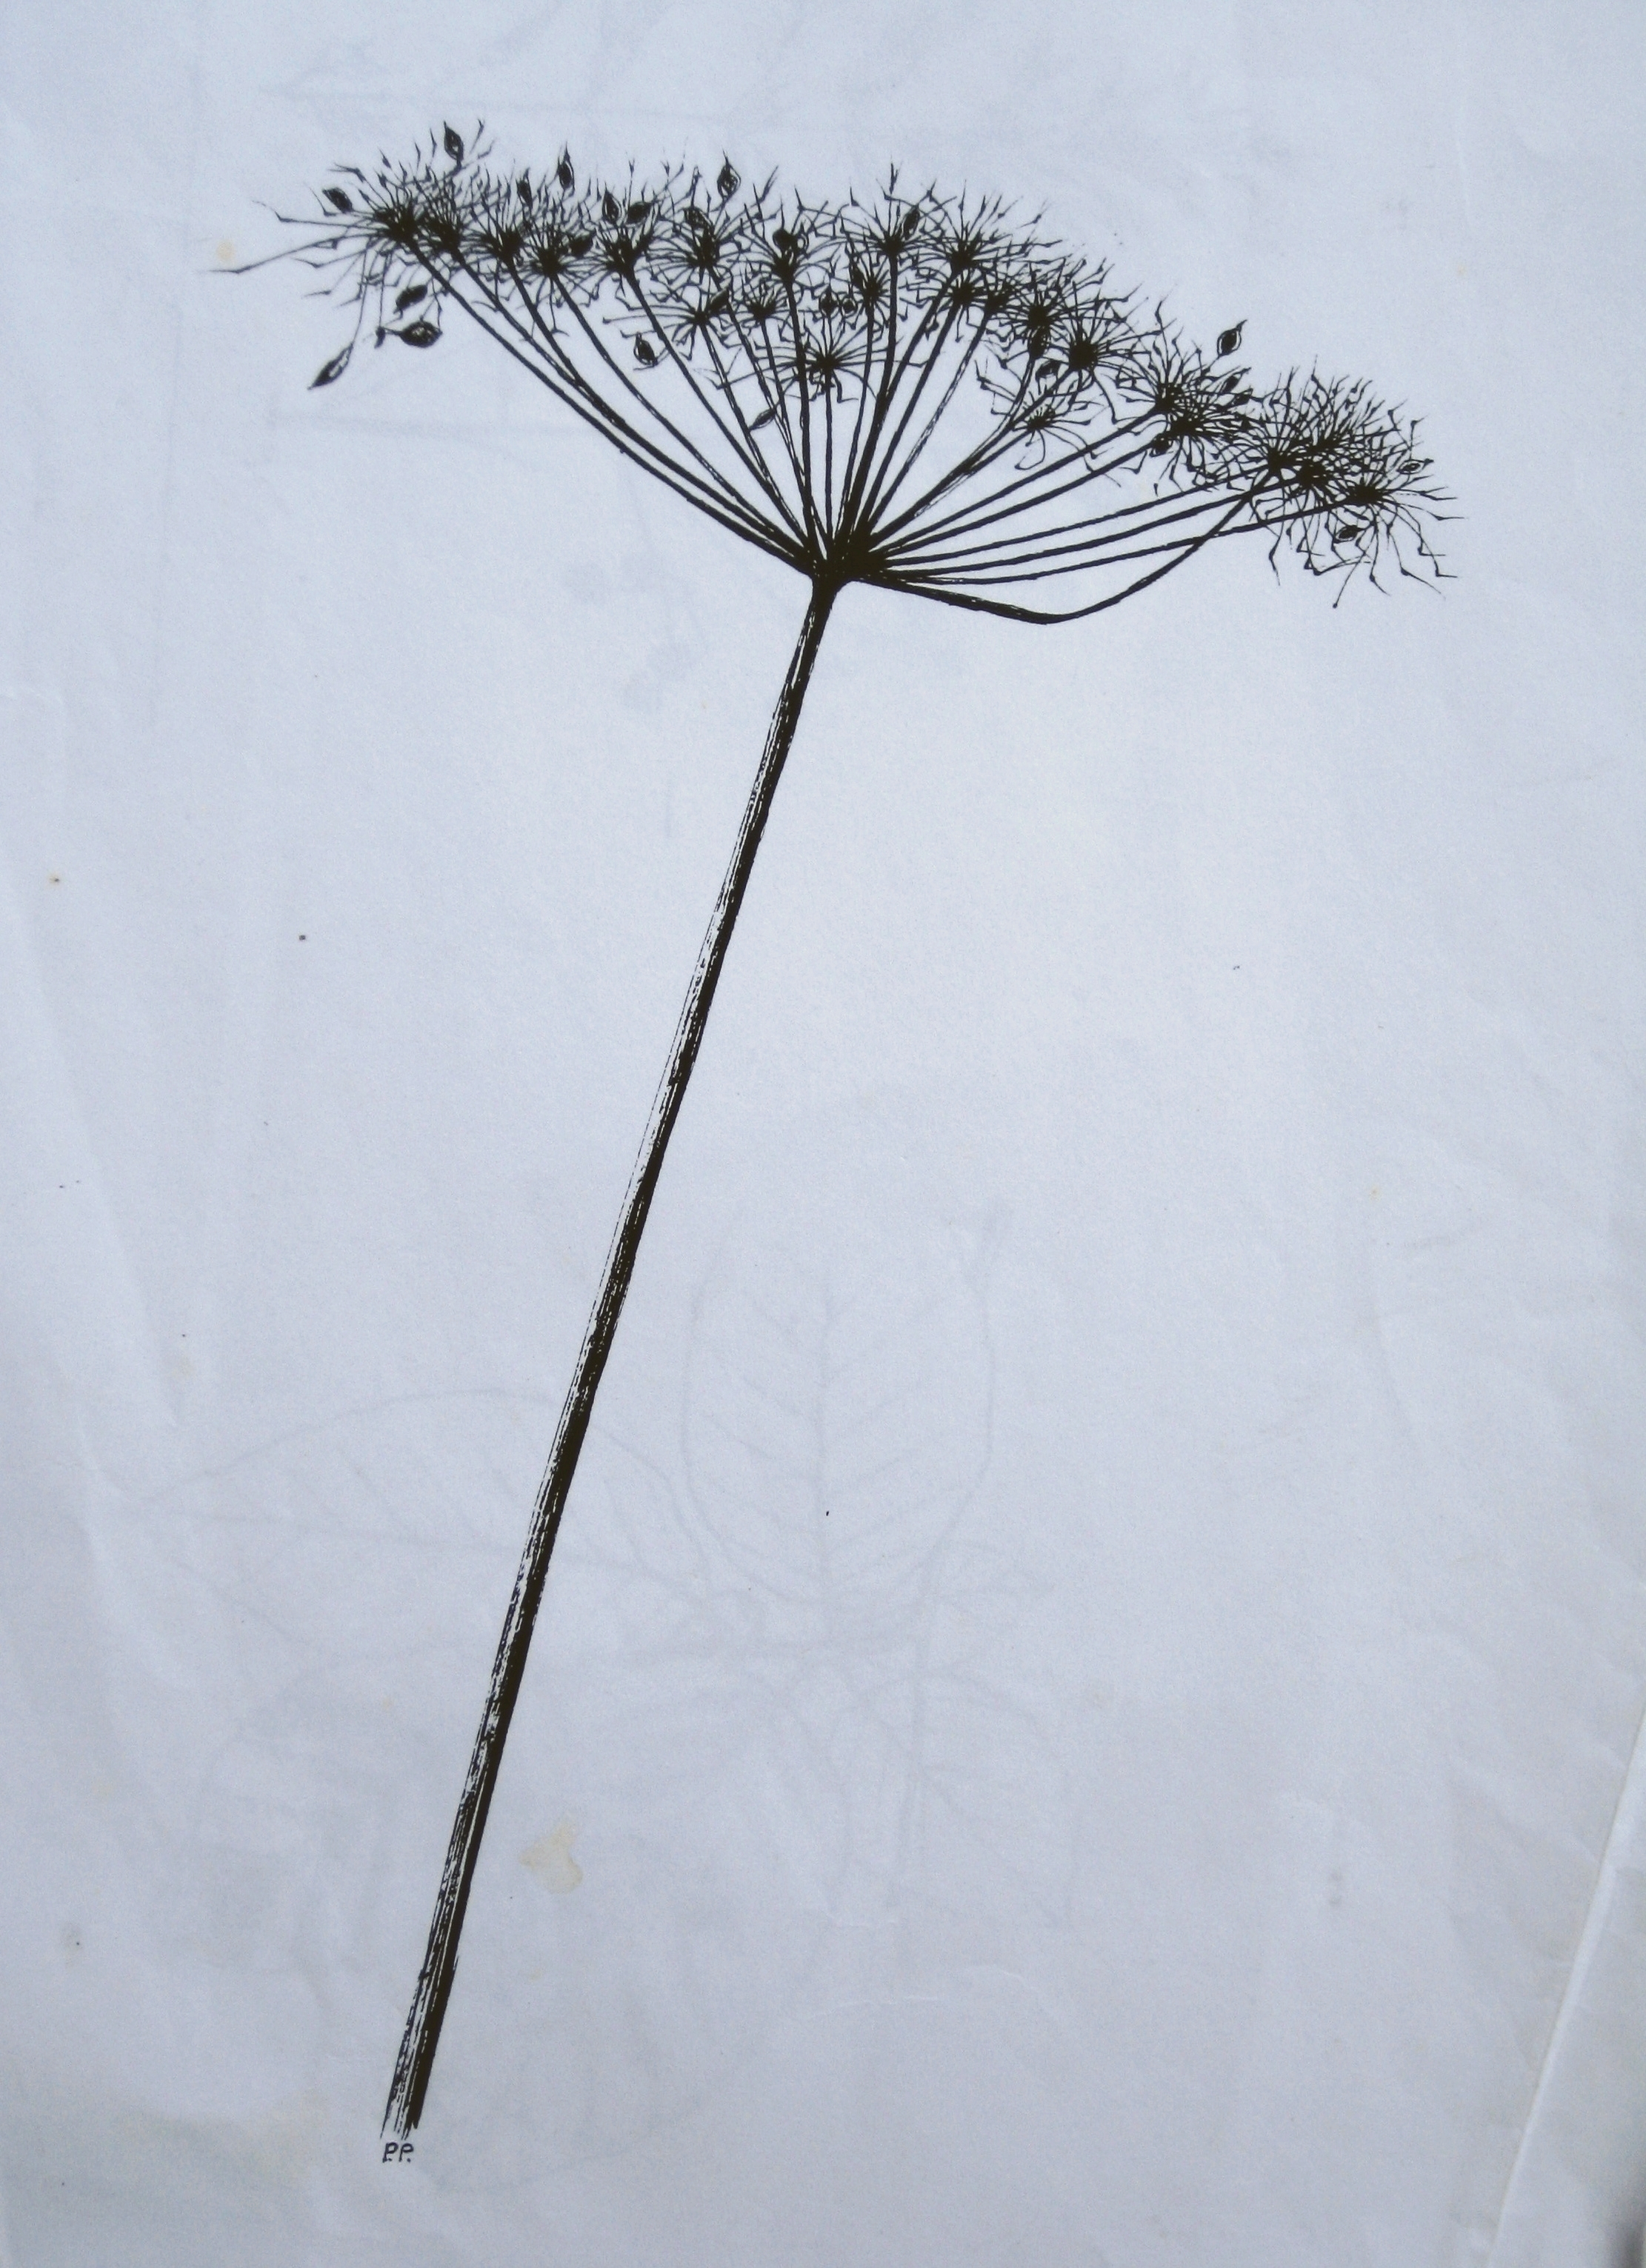 UMBELLIFER, WINTER